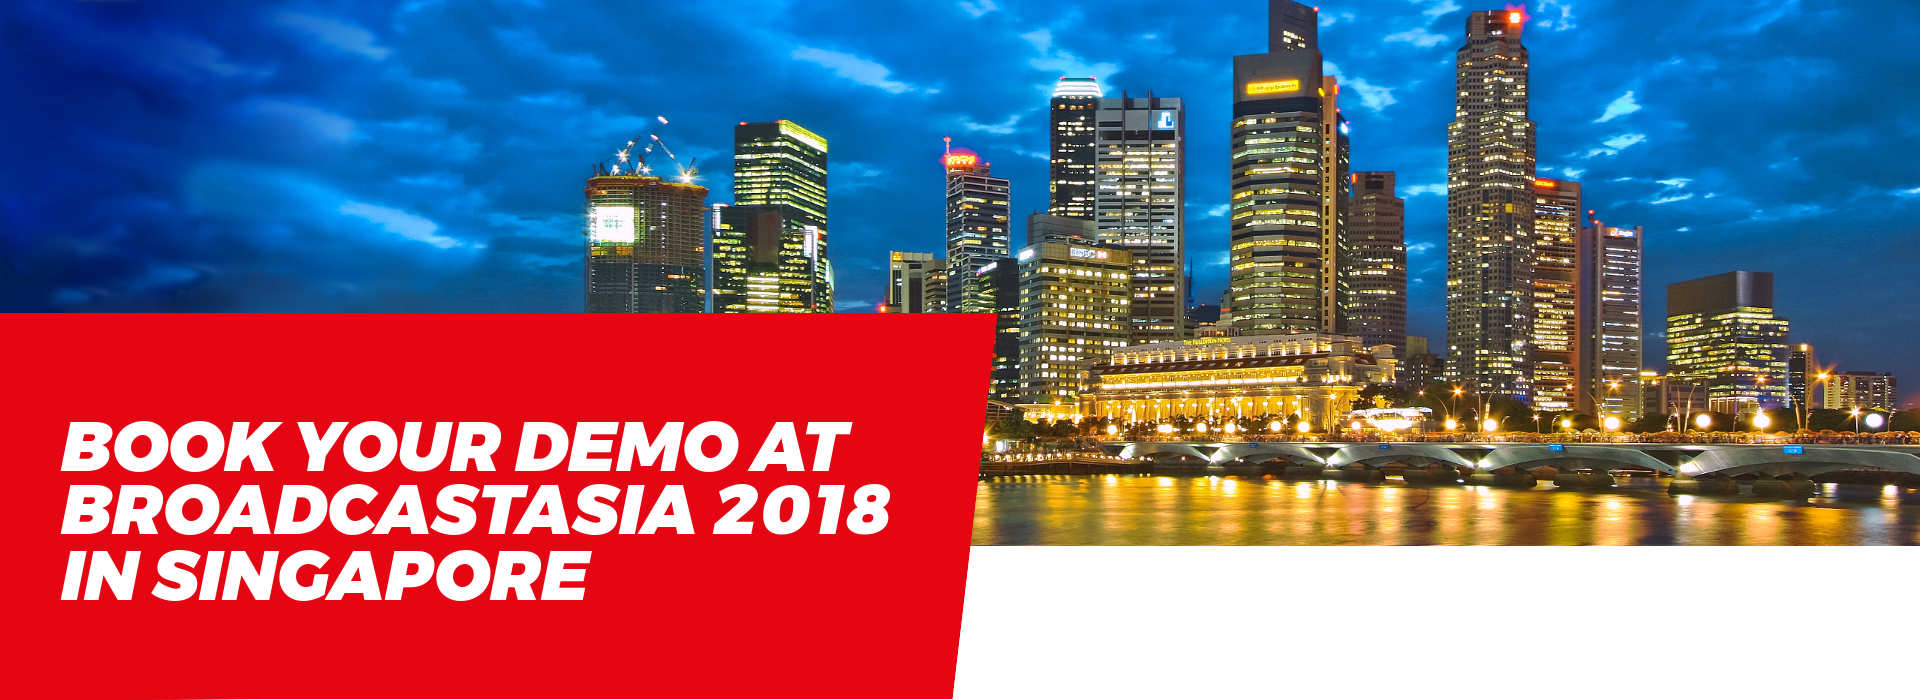 Book your demo at BroadcastAsia 2018 in Singapore